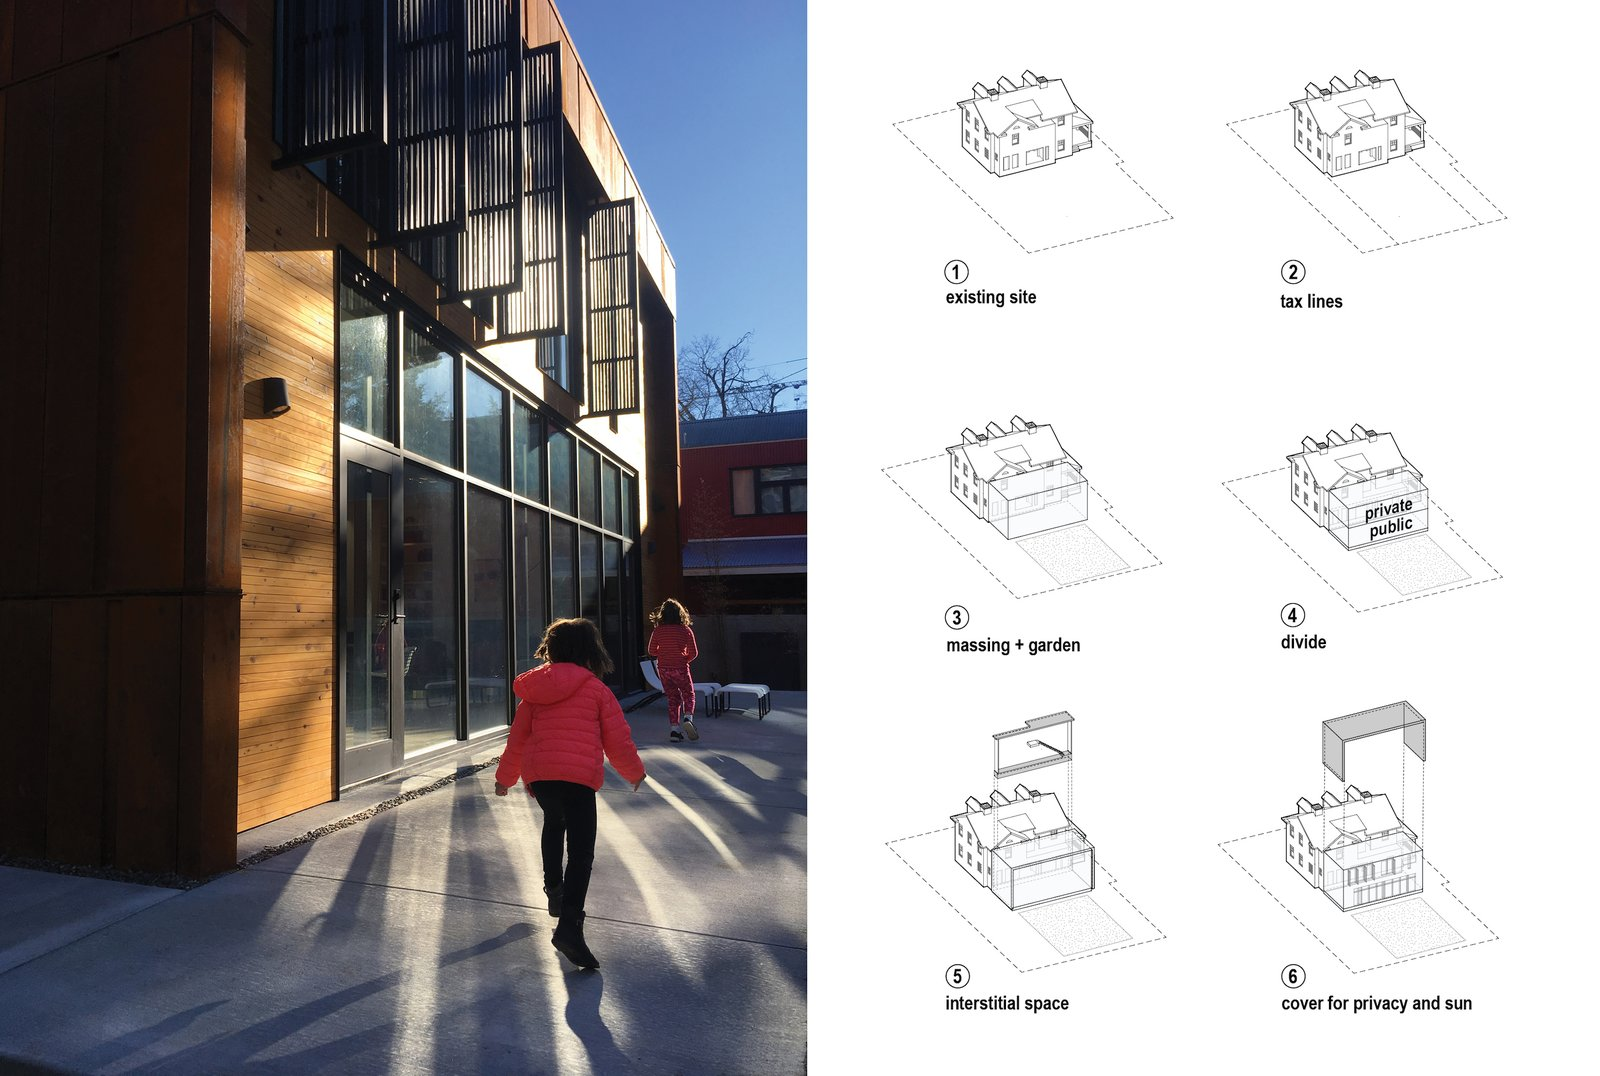 """Exterior, Metal Siding Material, Metal Roof Material, House Building Type, and Flat RoofLine Left: Louvered """"fins"""" keep the sun's glare out of the master bedroom upstairs. Right: Diagram demonstrating the sectional opportunity between old and new.  Hillcrest House Addition: An Innovative Approach to Old + New"""